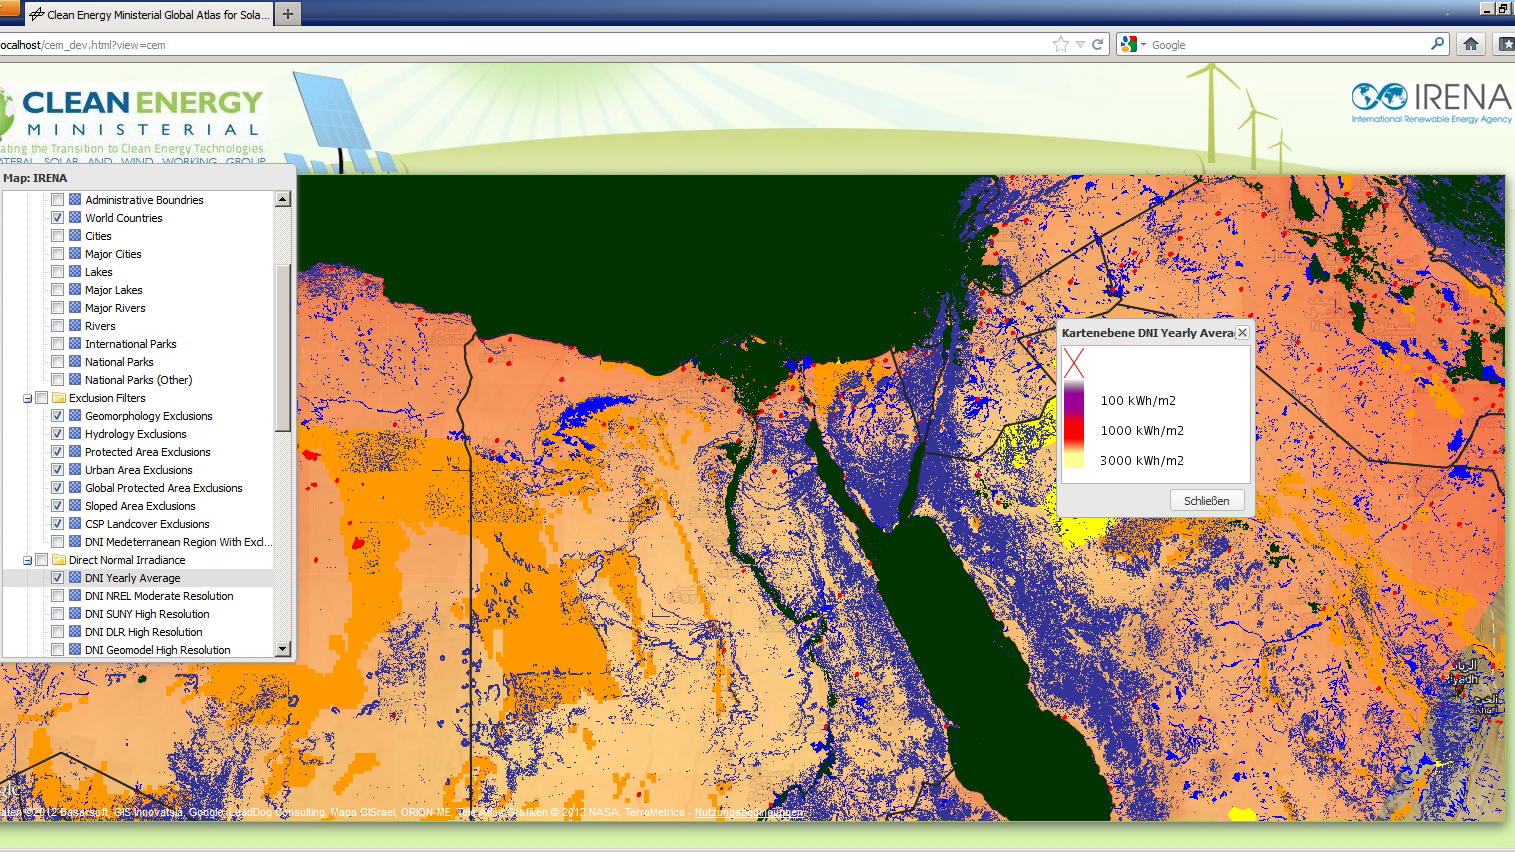 Global atlas for solar and wind energy launched download gumiabroncs Images